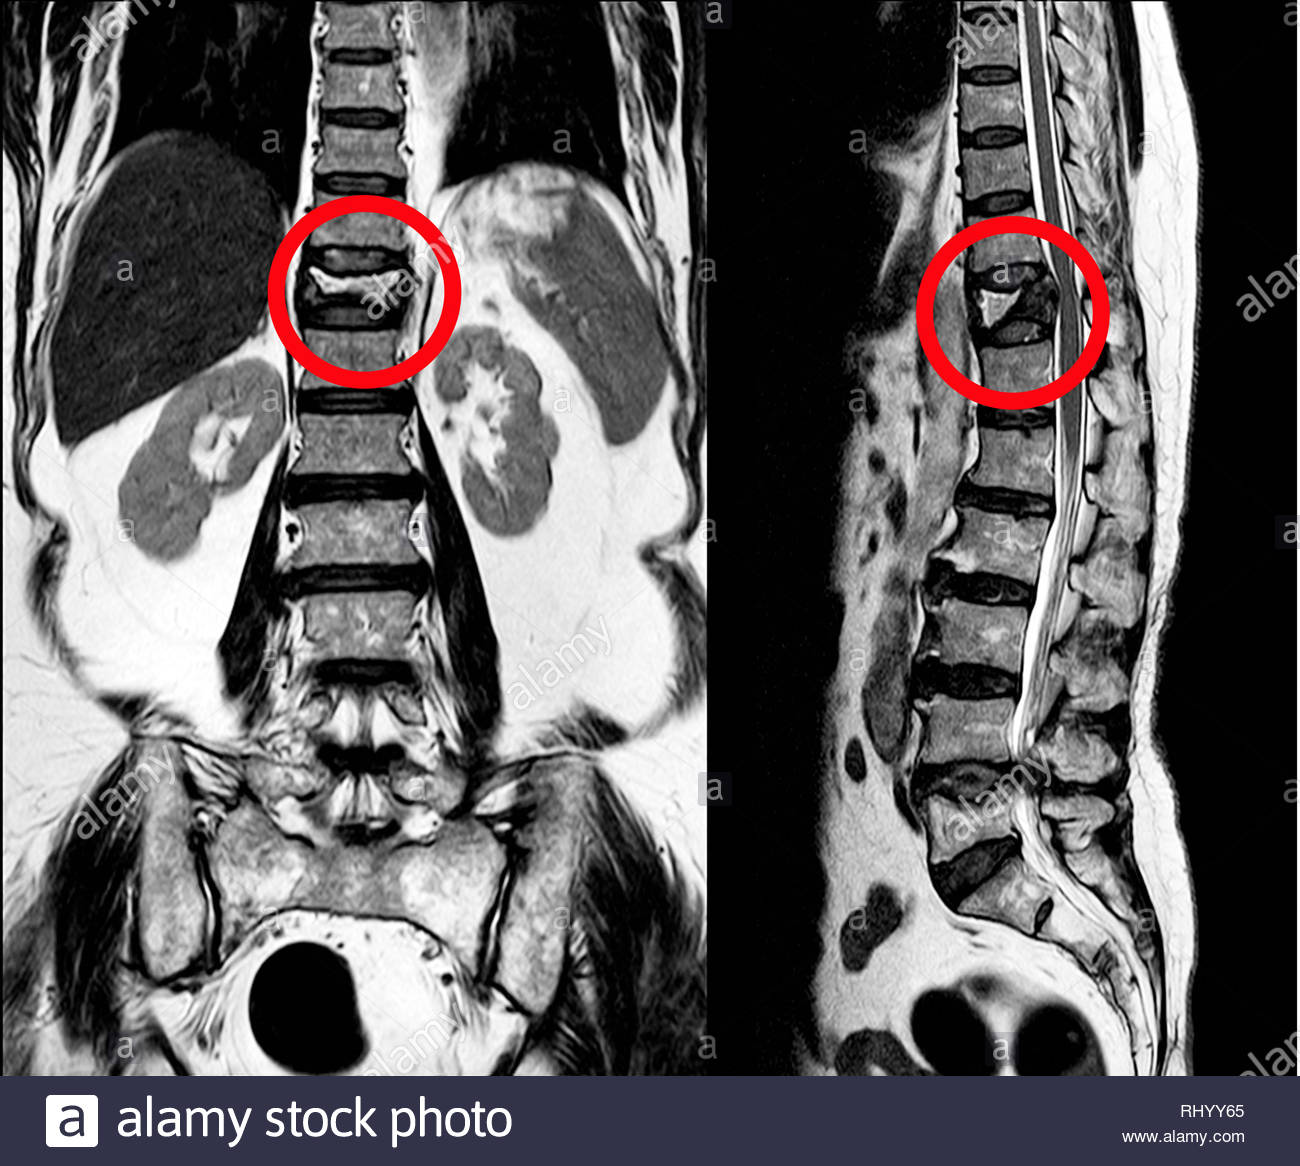 MRI Thoracic lumbar spine show moderate pathological compression fracture of T12 level. Stock Photo